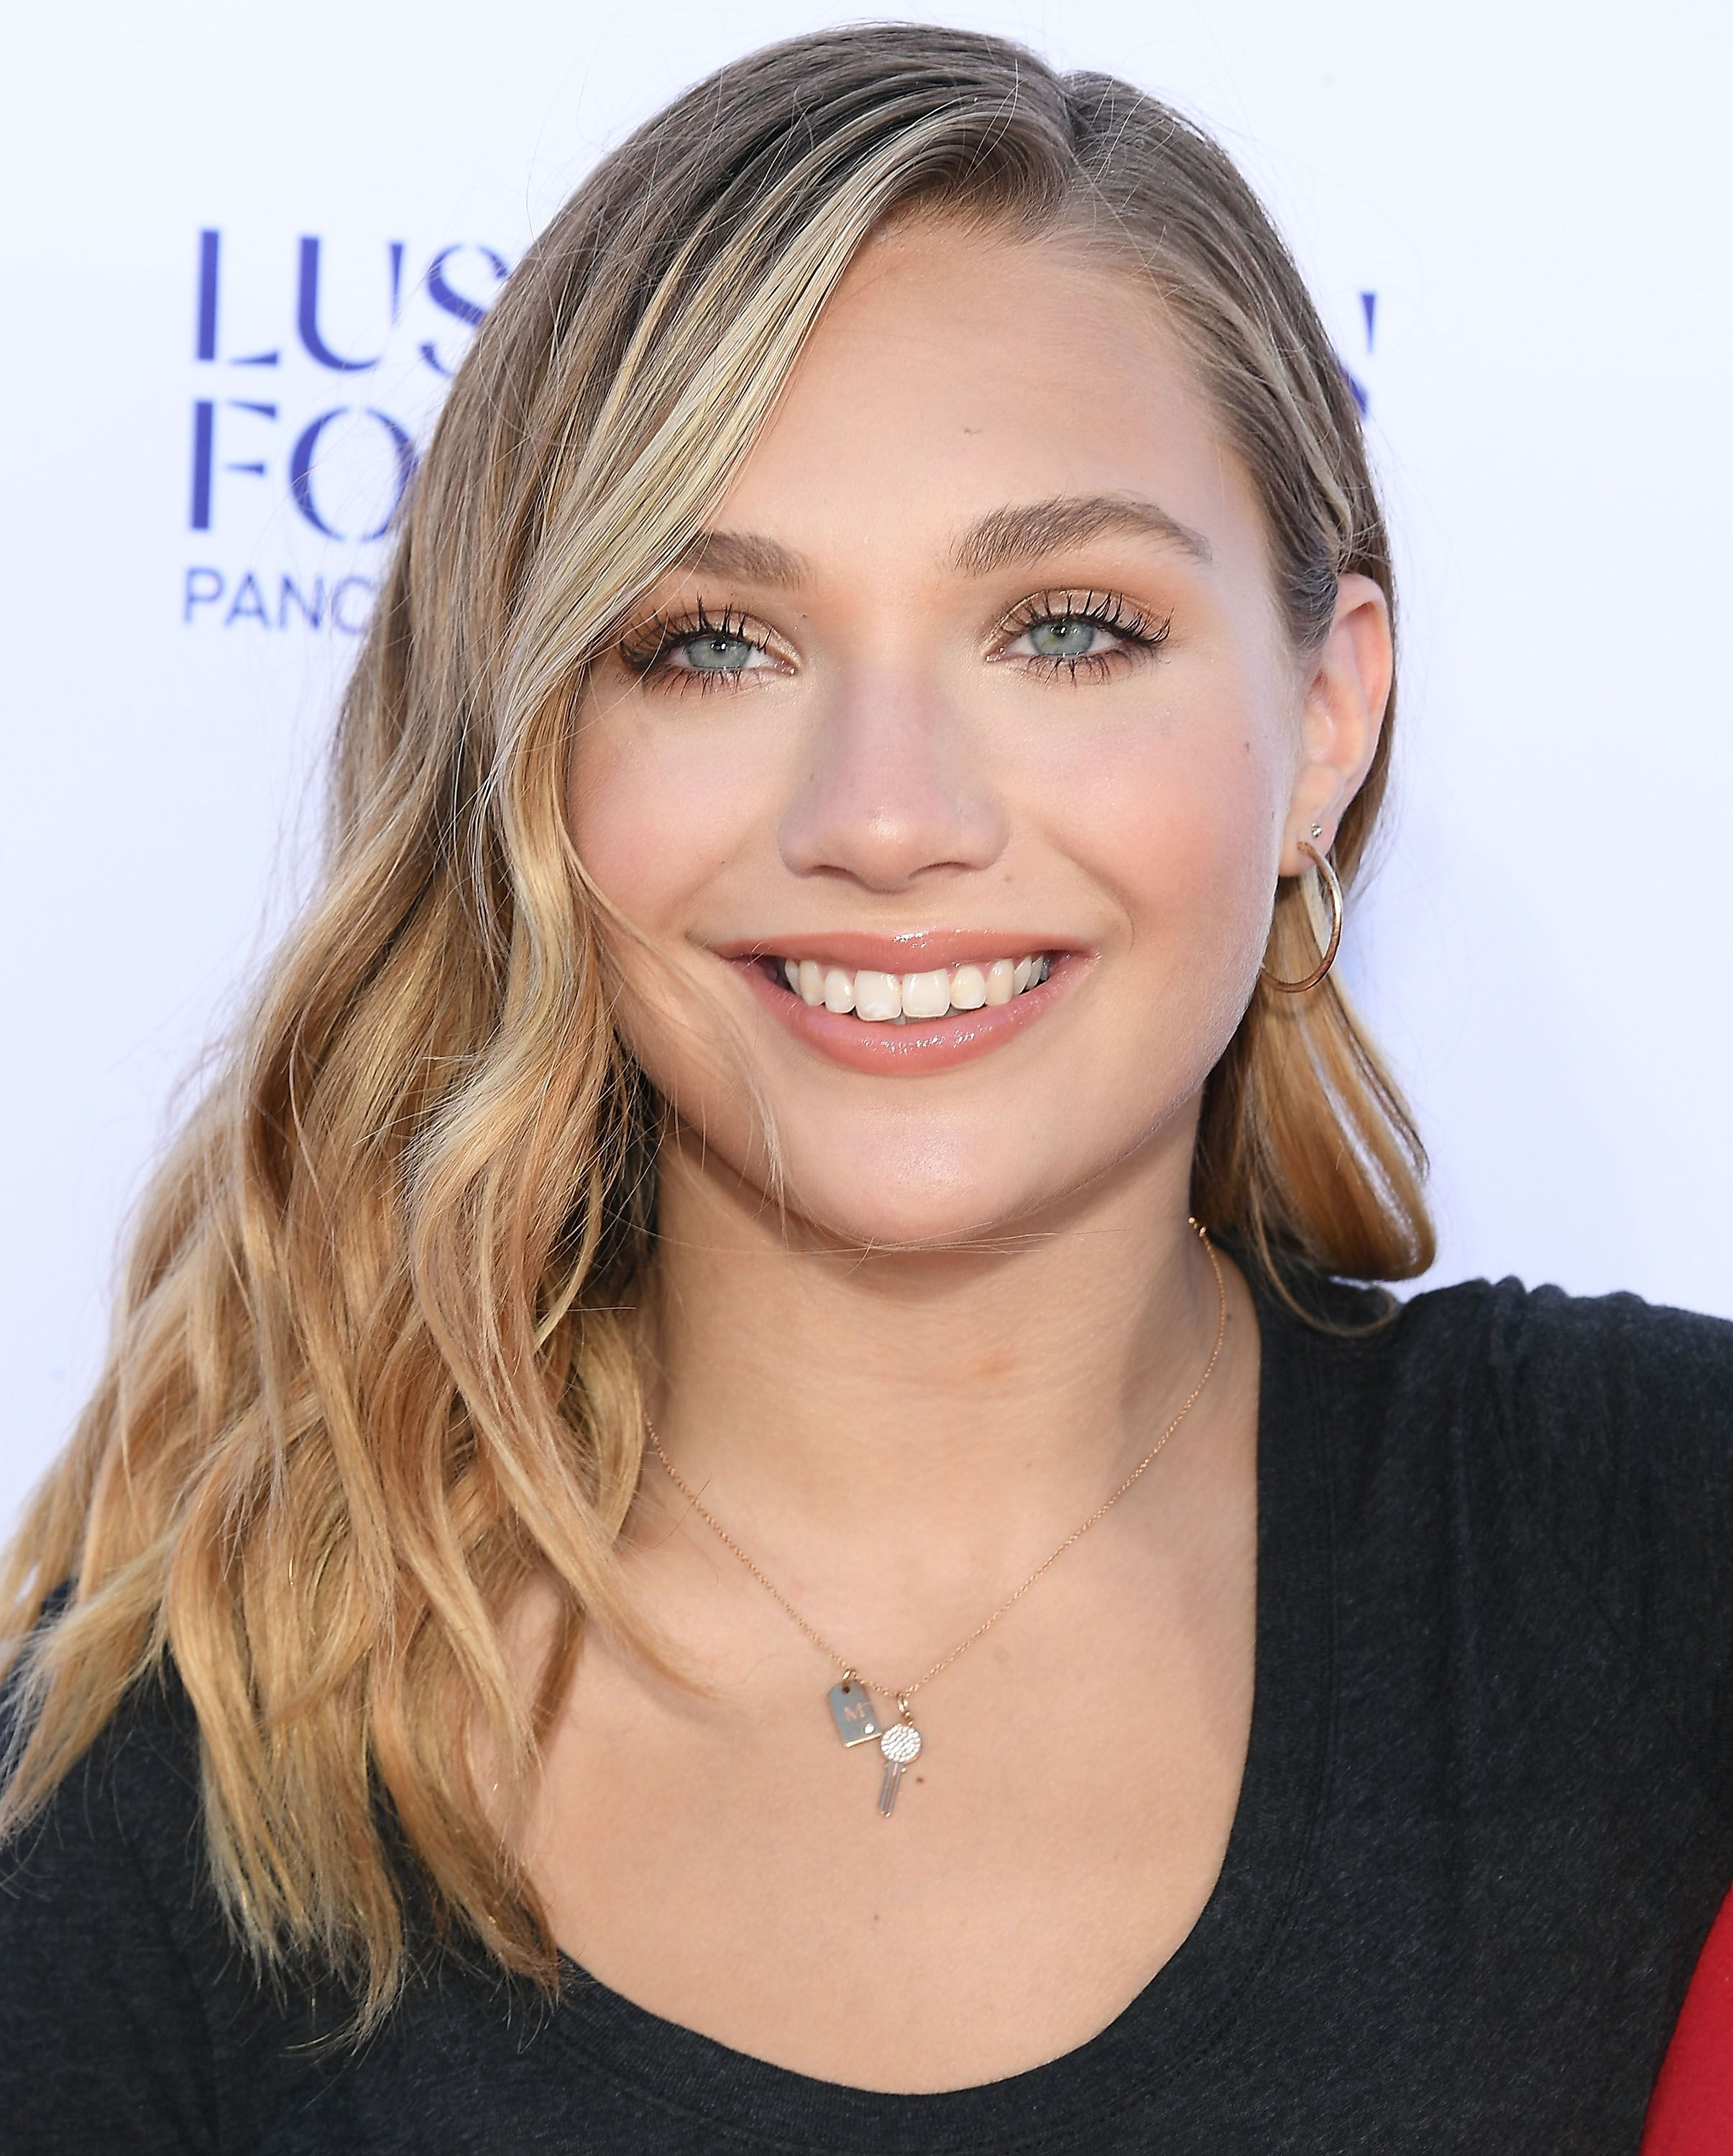 Maddie Ziegler Net Worth - How Much Maddie Ziegler Makes